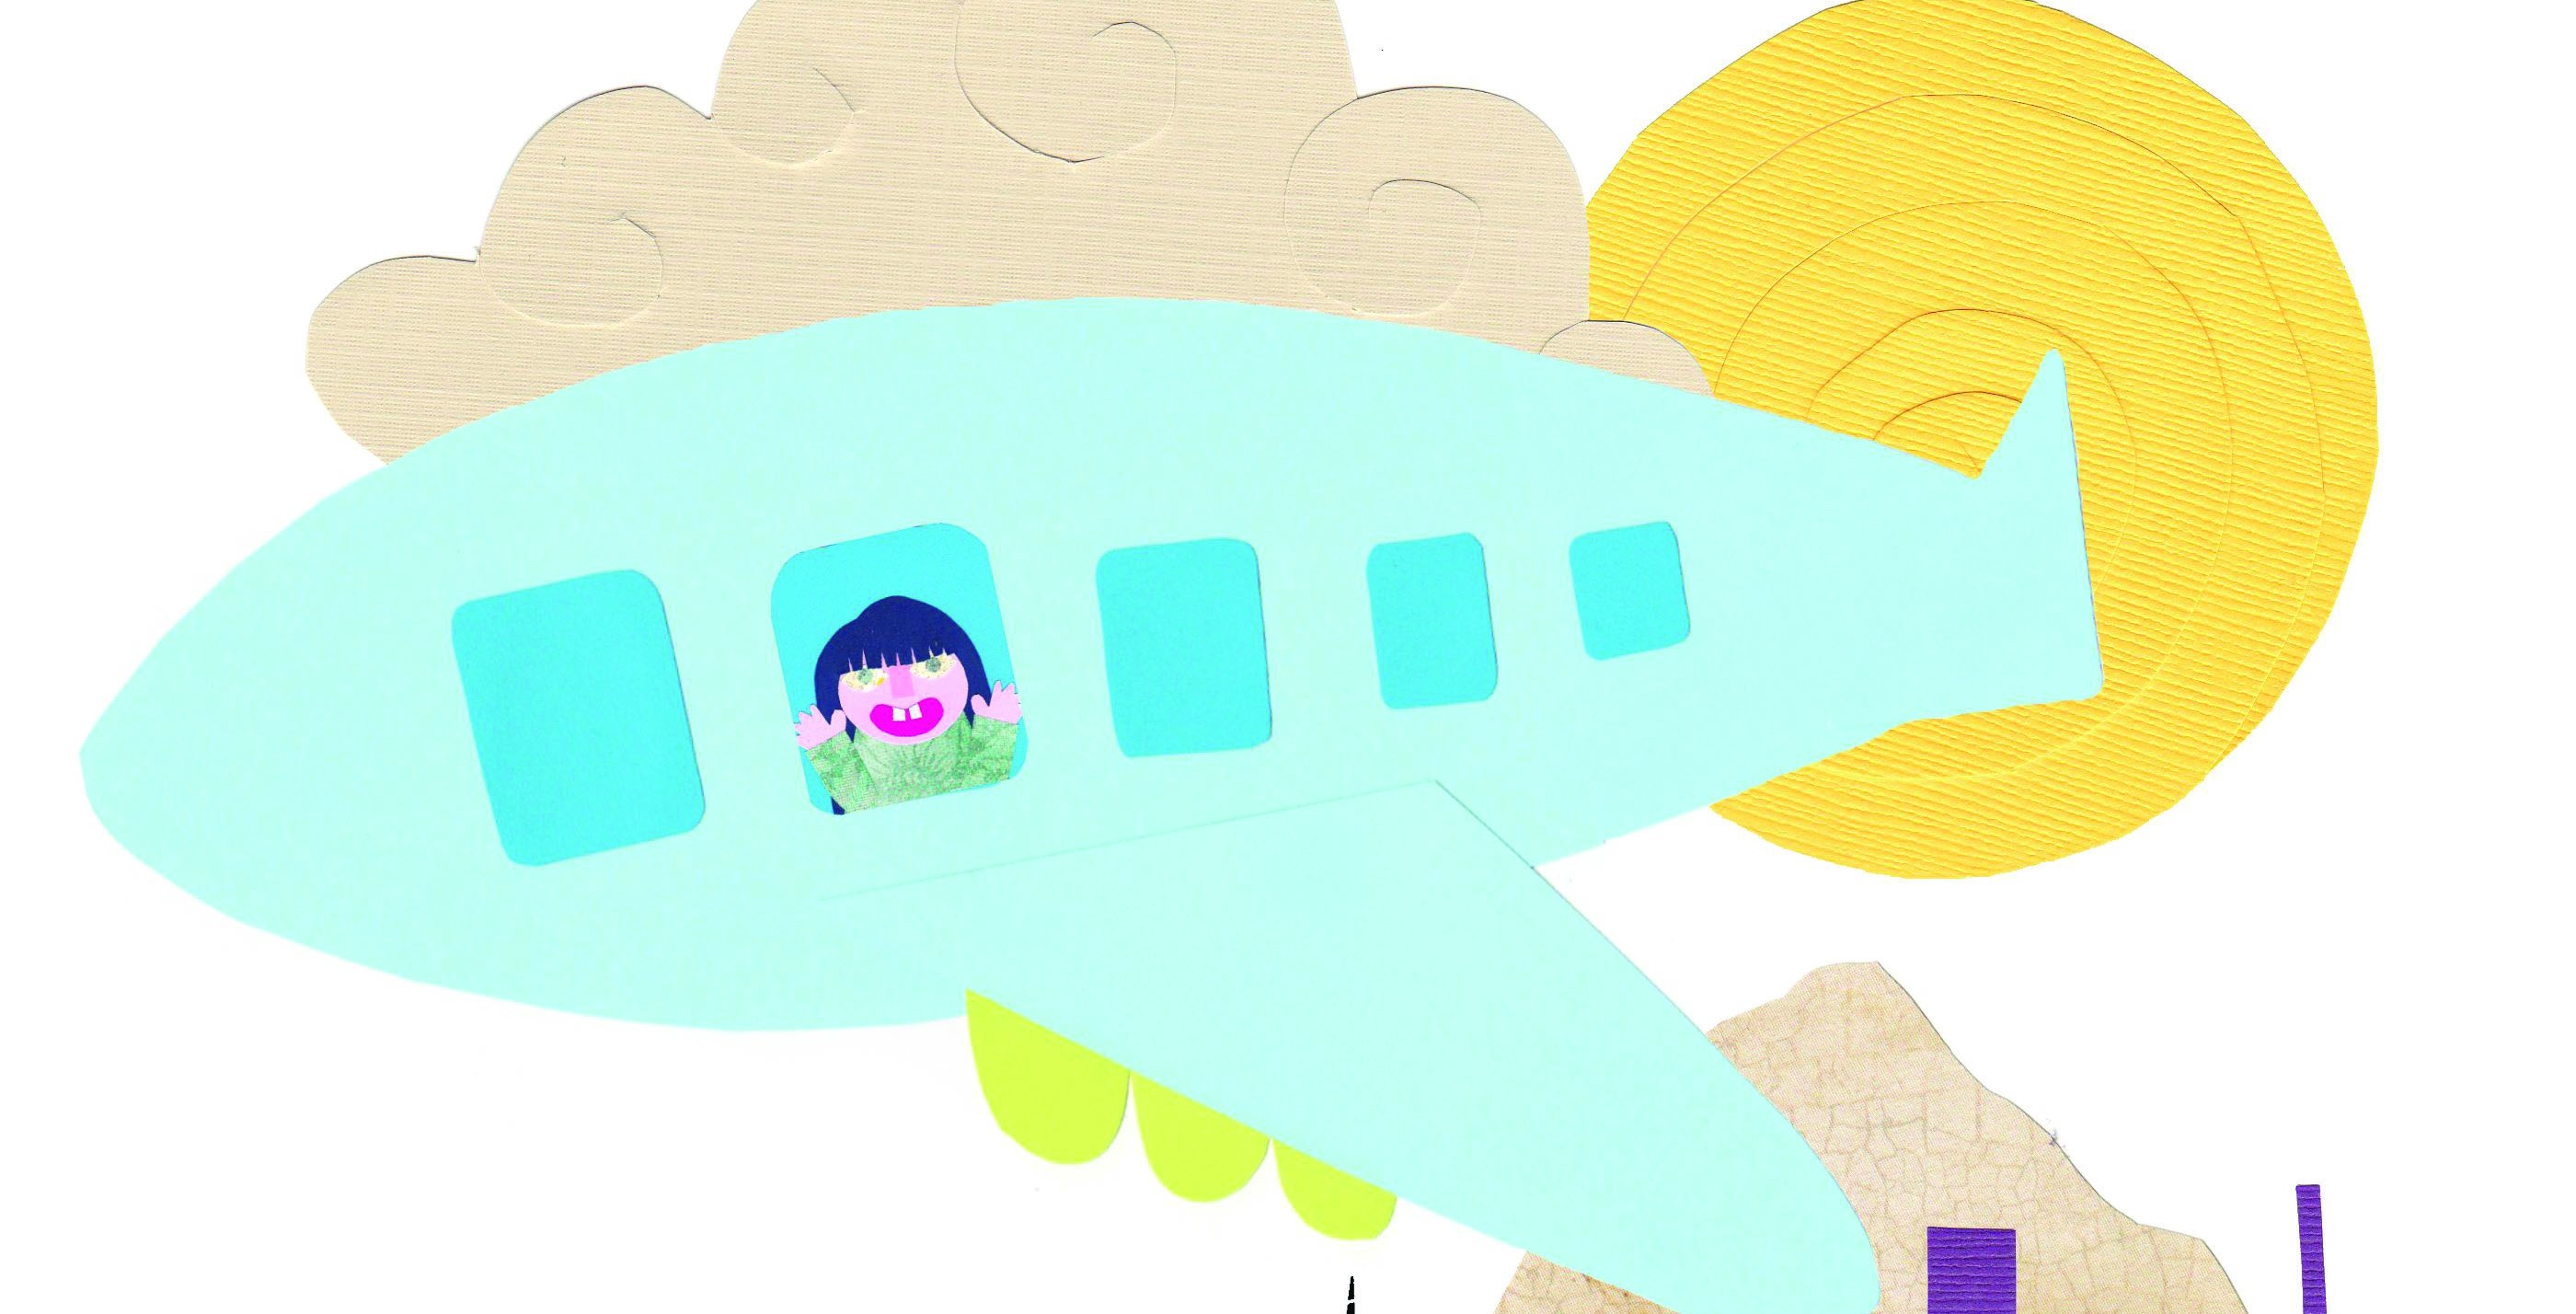 Jet-Setting on a Student Budget